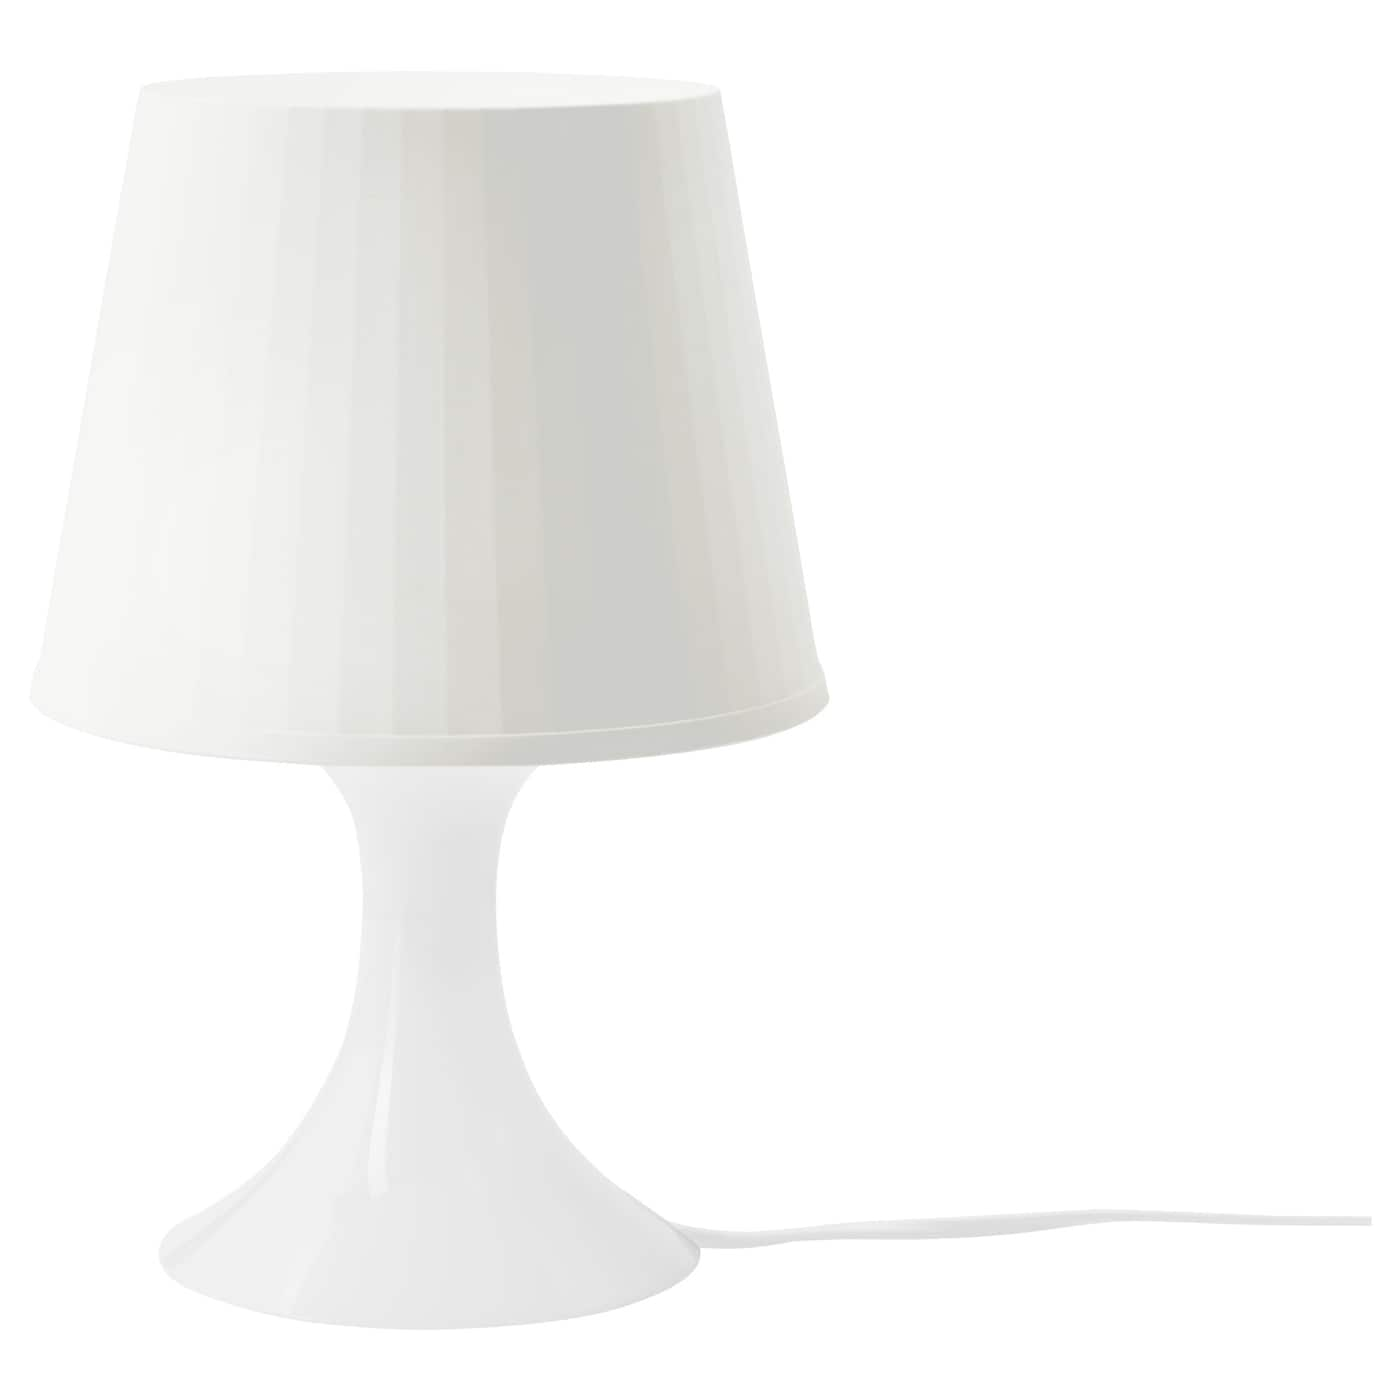 LAMPAN Table Lamp White